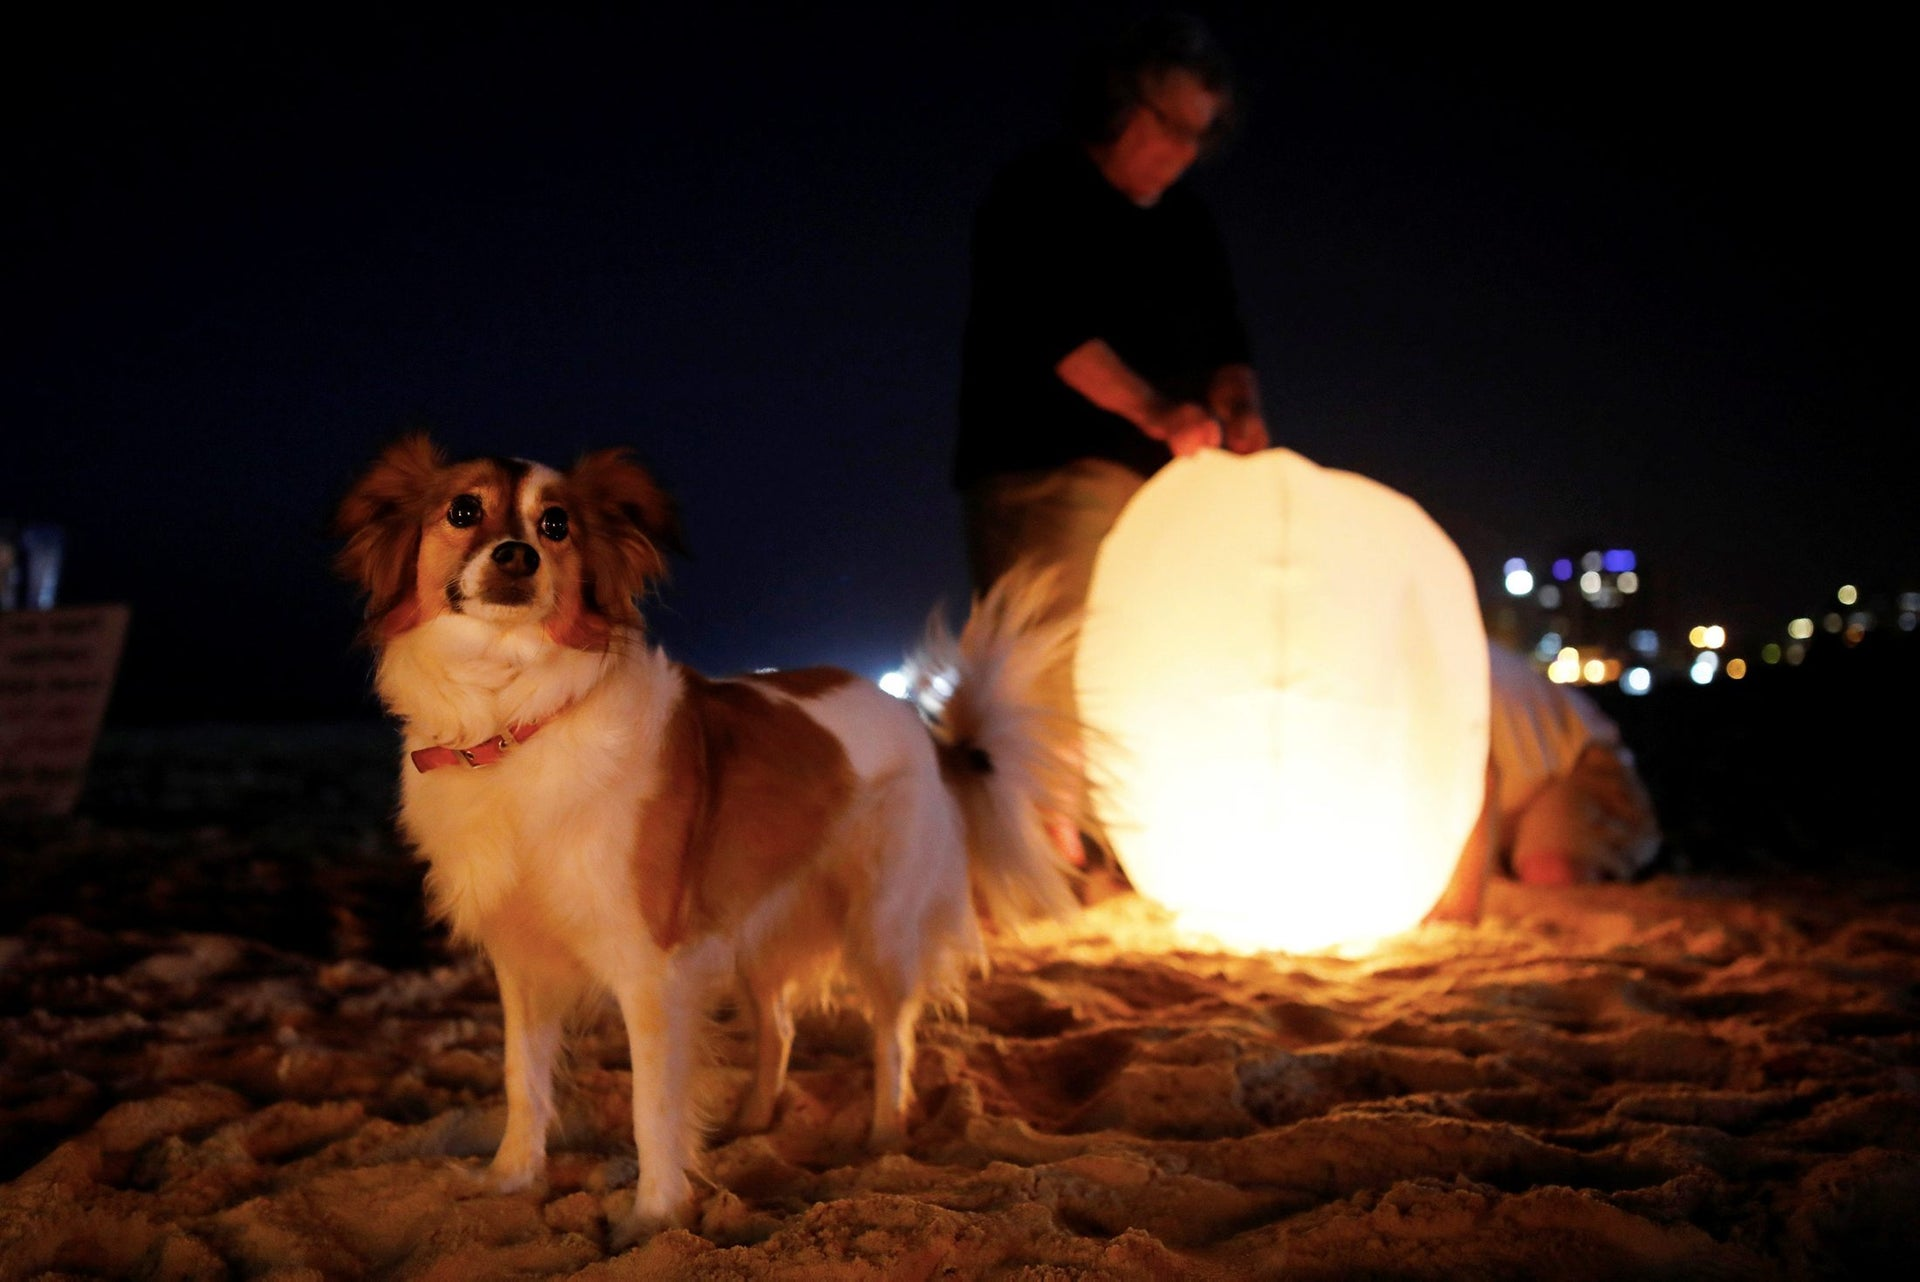 An Israeli peace activist prepare a sky lantern before release it, hoping to illuminate the sky in Gaza, as they protest Israel's reduction of power supply to Gaza, at a beach in Ashkelon, southern Israel June 19, 2017.